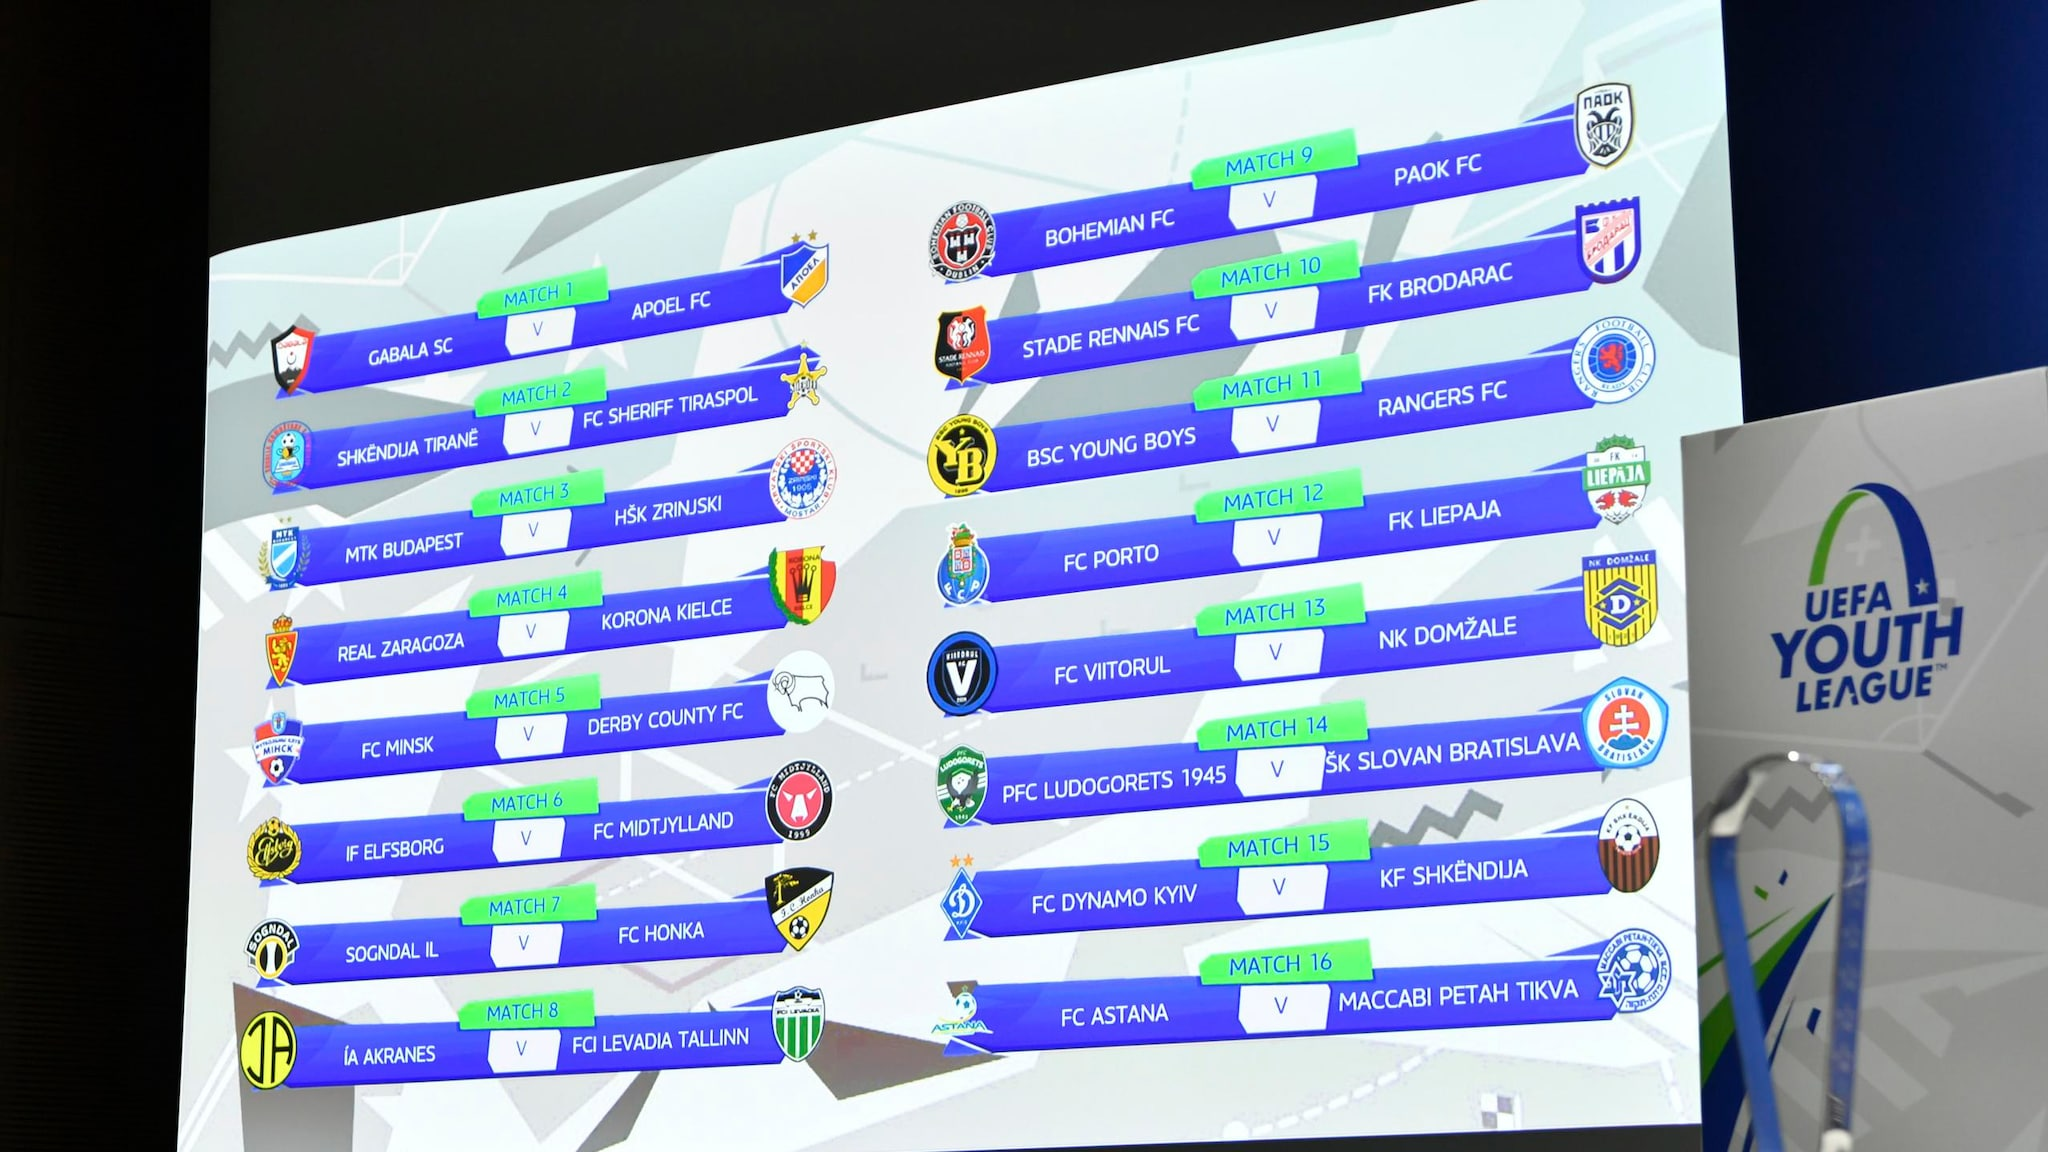 UEFA Youth League domestic champions path draw - UEFA Youth